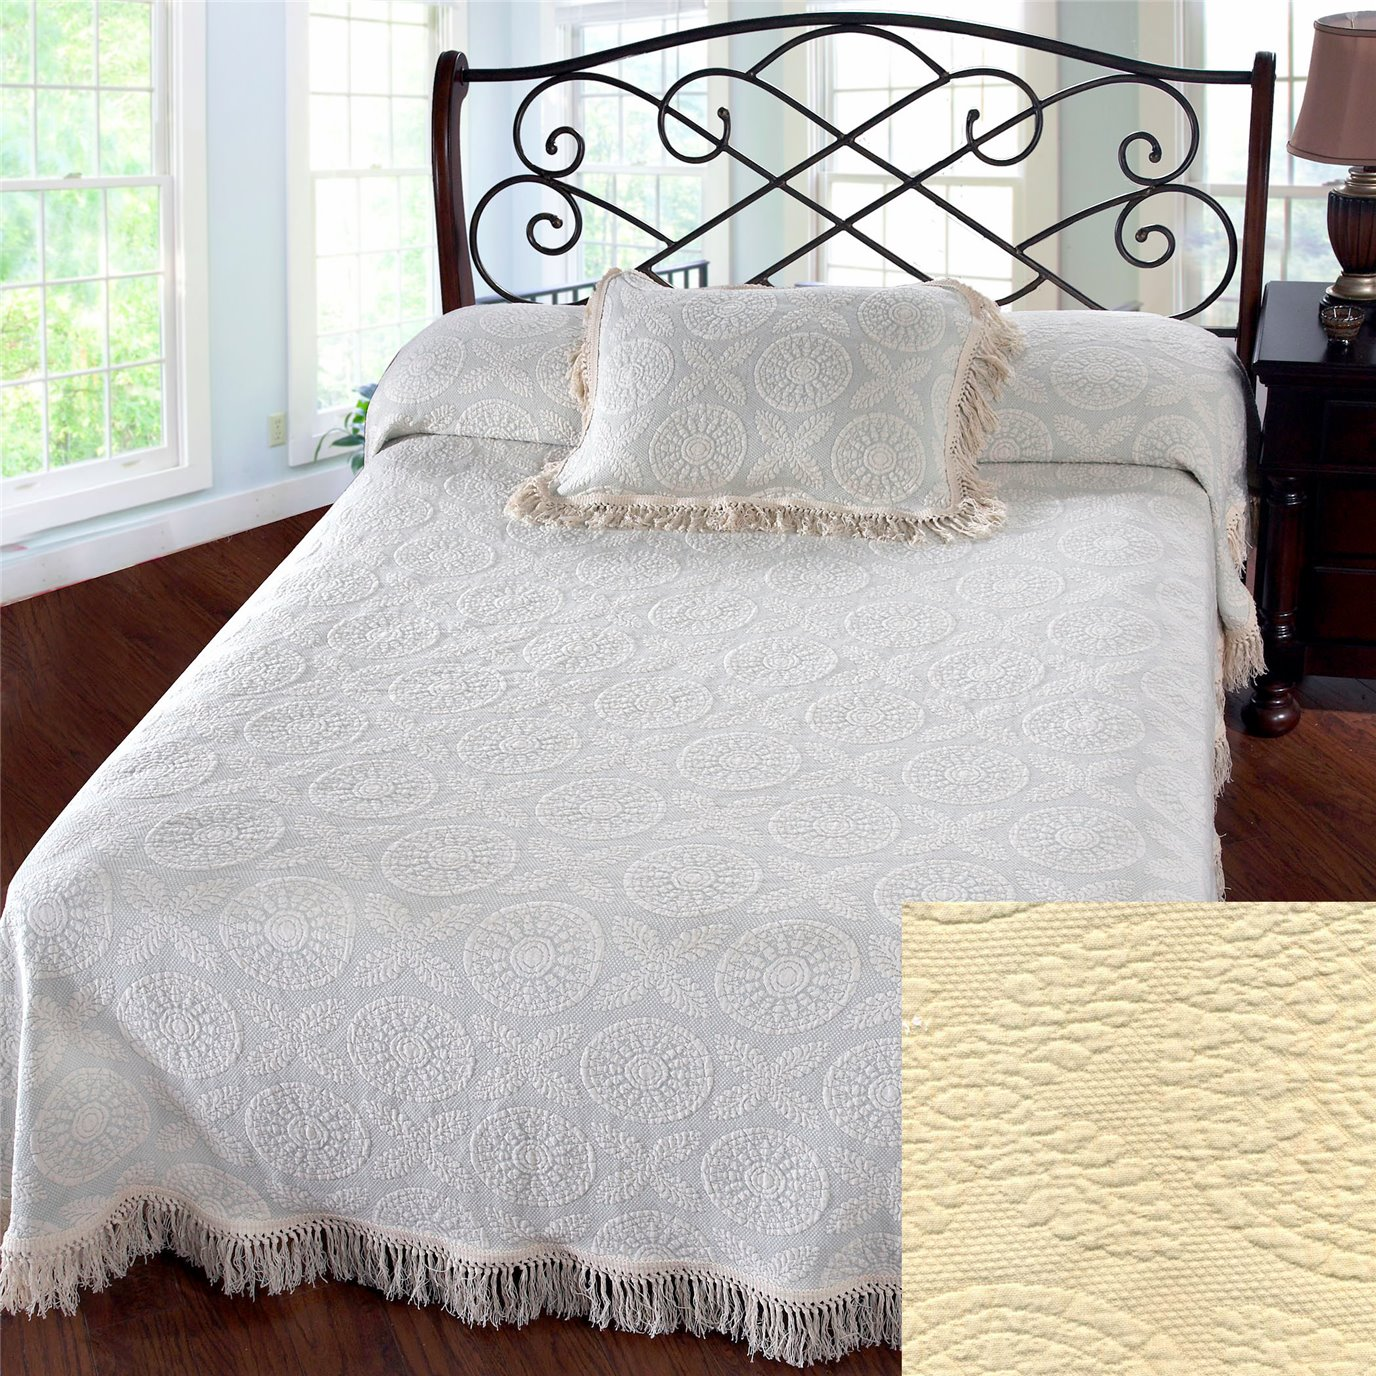 Heirloom King Antique Bedspread